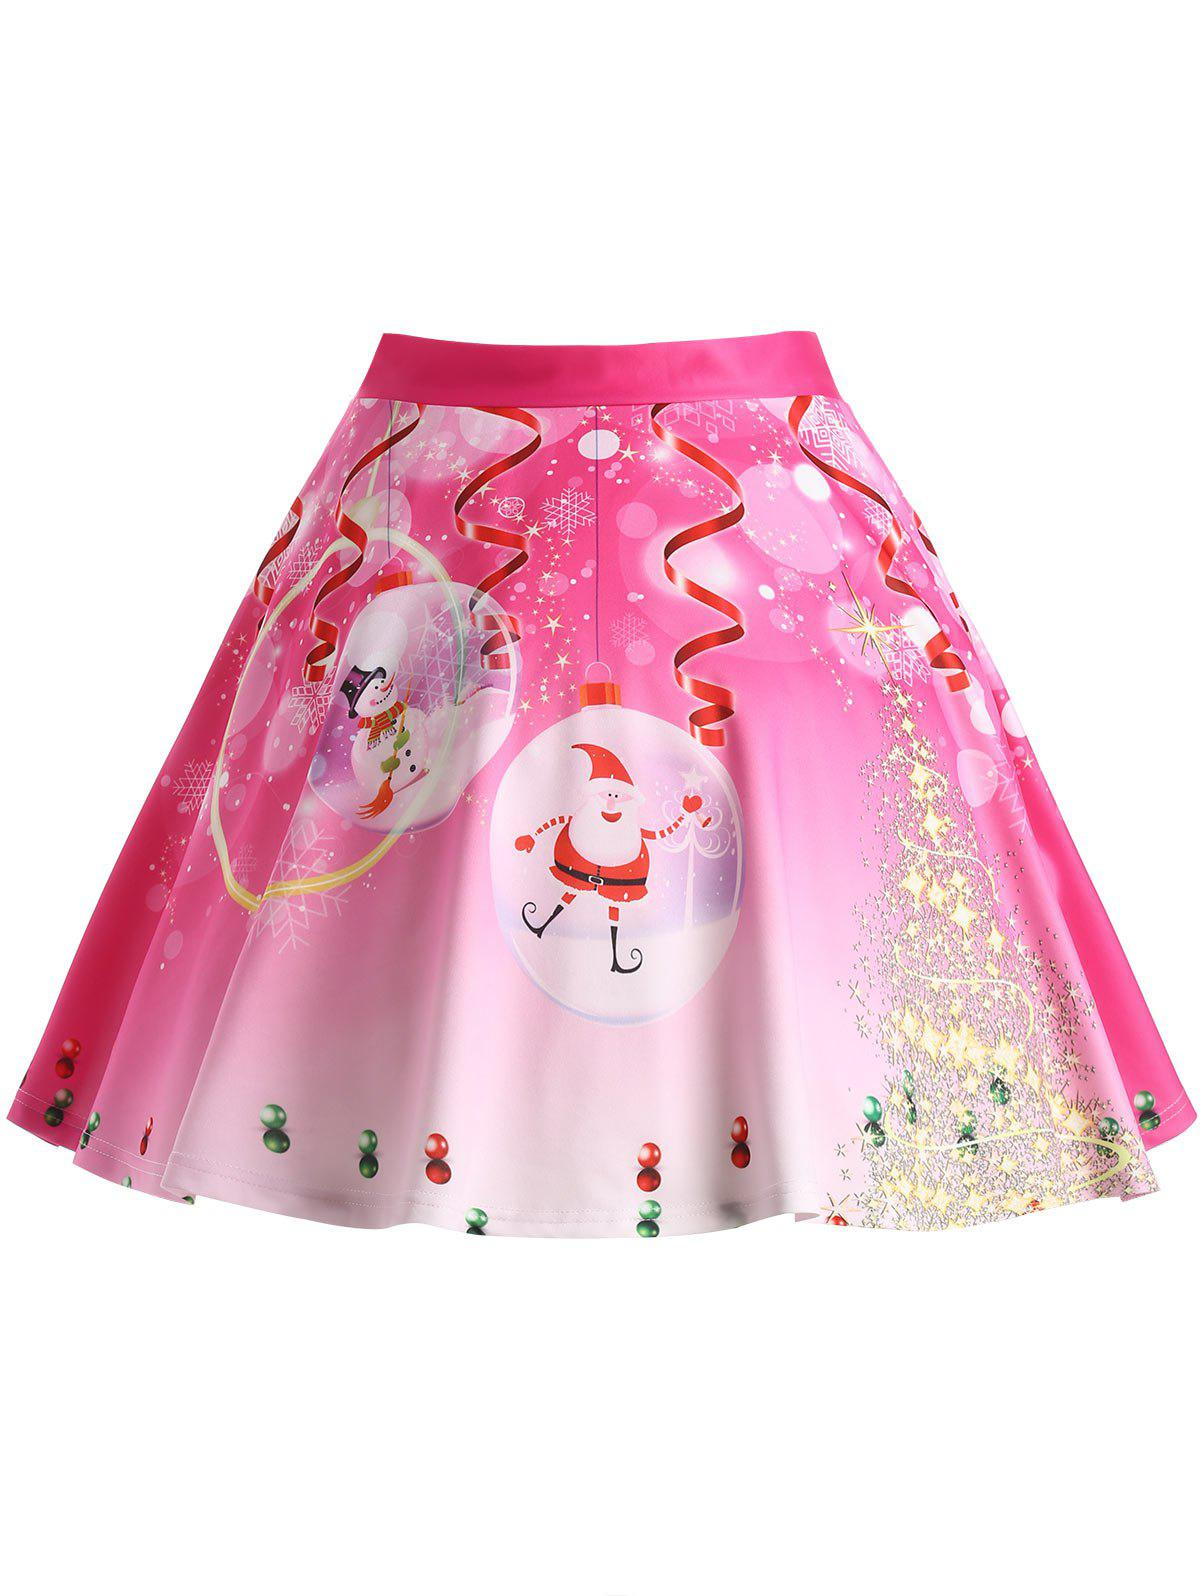 Christmas Tree Santa Claus Print Plus Size SkirtWOMEN<br><br>Size: 3XL; Color: ROSE RED; Material: Polyester; Length: Knee-Length; Silhouette: A-Line; Pattern Type: Plant,Star; Season: Winter; With Belt: No; Weight: 0.3750kg; Package Contents: 1 x Skirt;